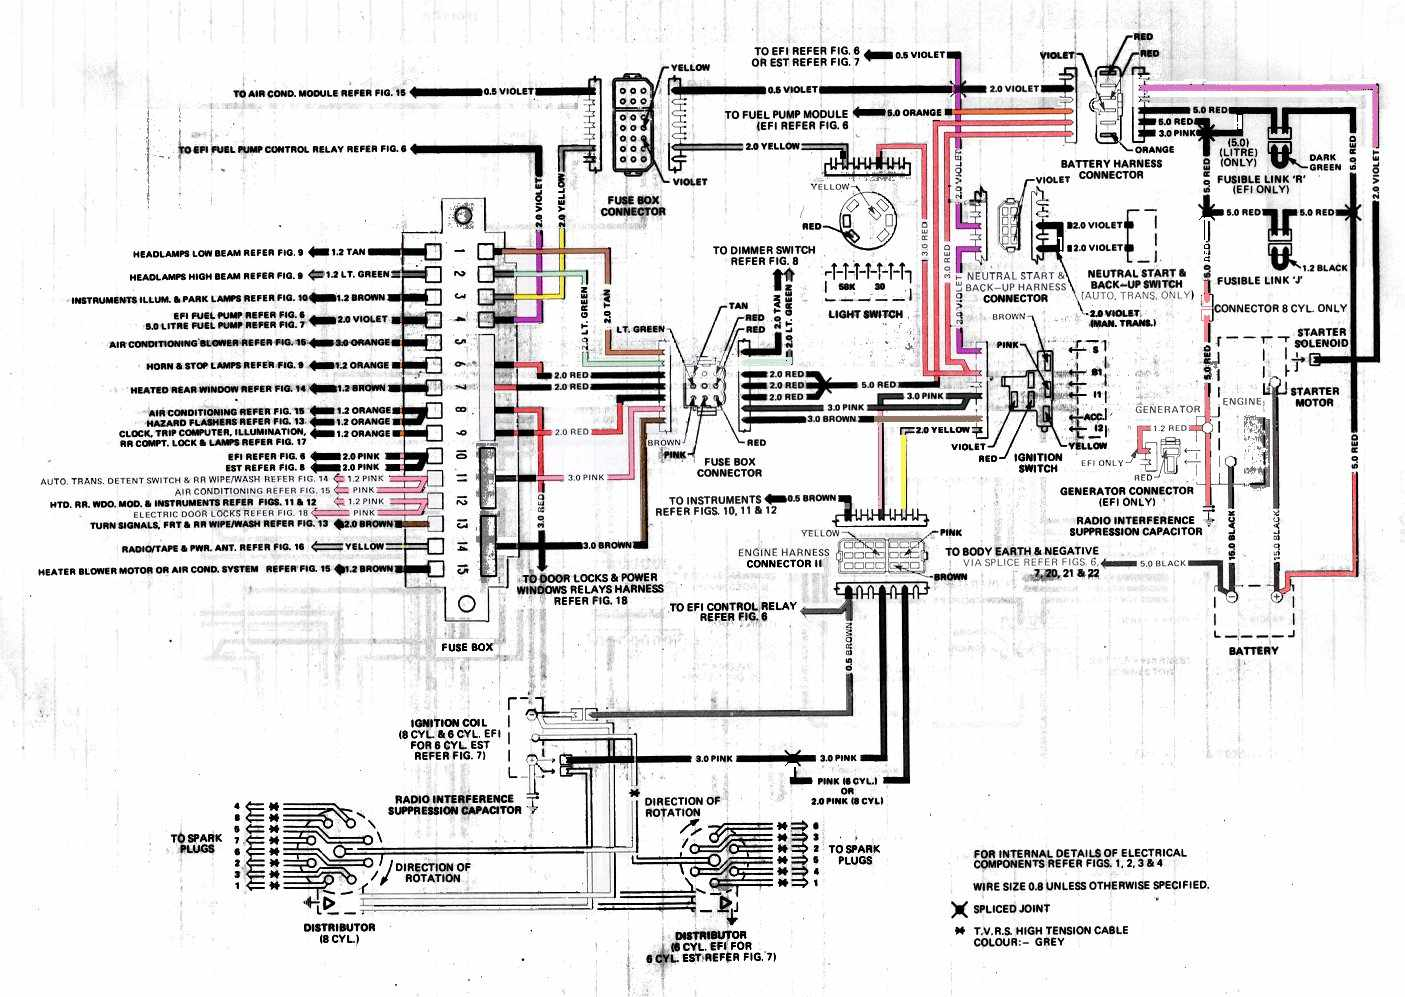 Holden+VK+Commodore+Generator+Electrical+Wiring+Diagram 100 [ wiring diagram maker ] software block diagram u2013 electrical wire diagram software freeware at bakdesigns.co